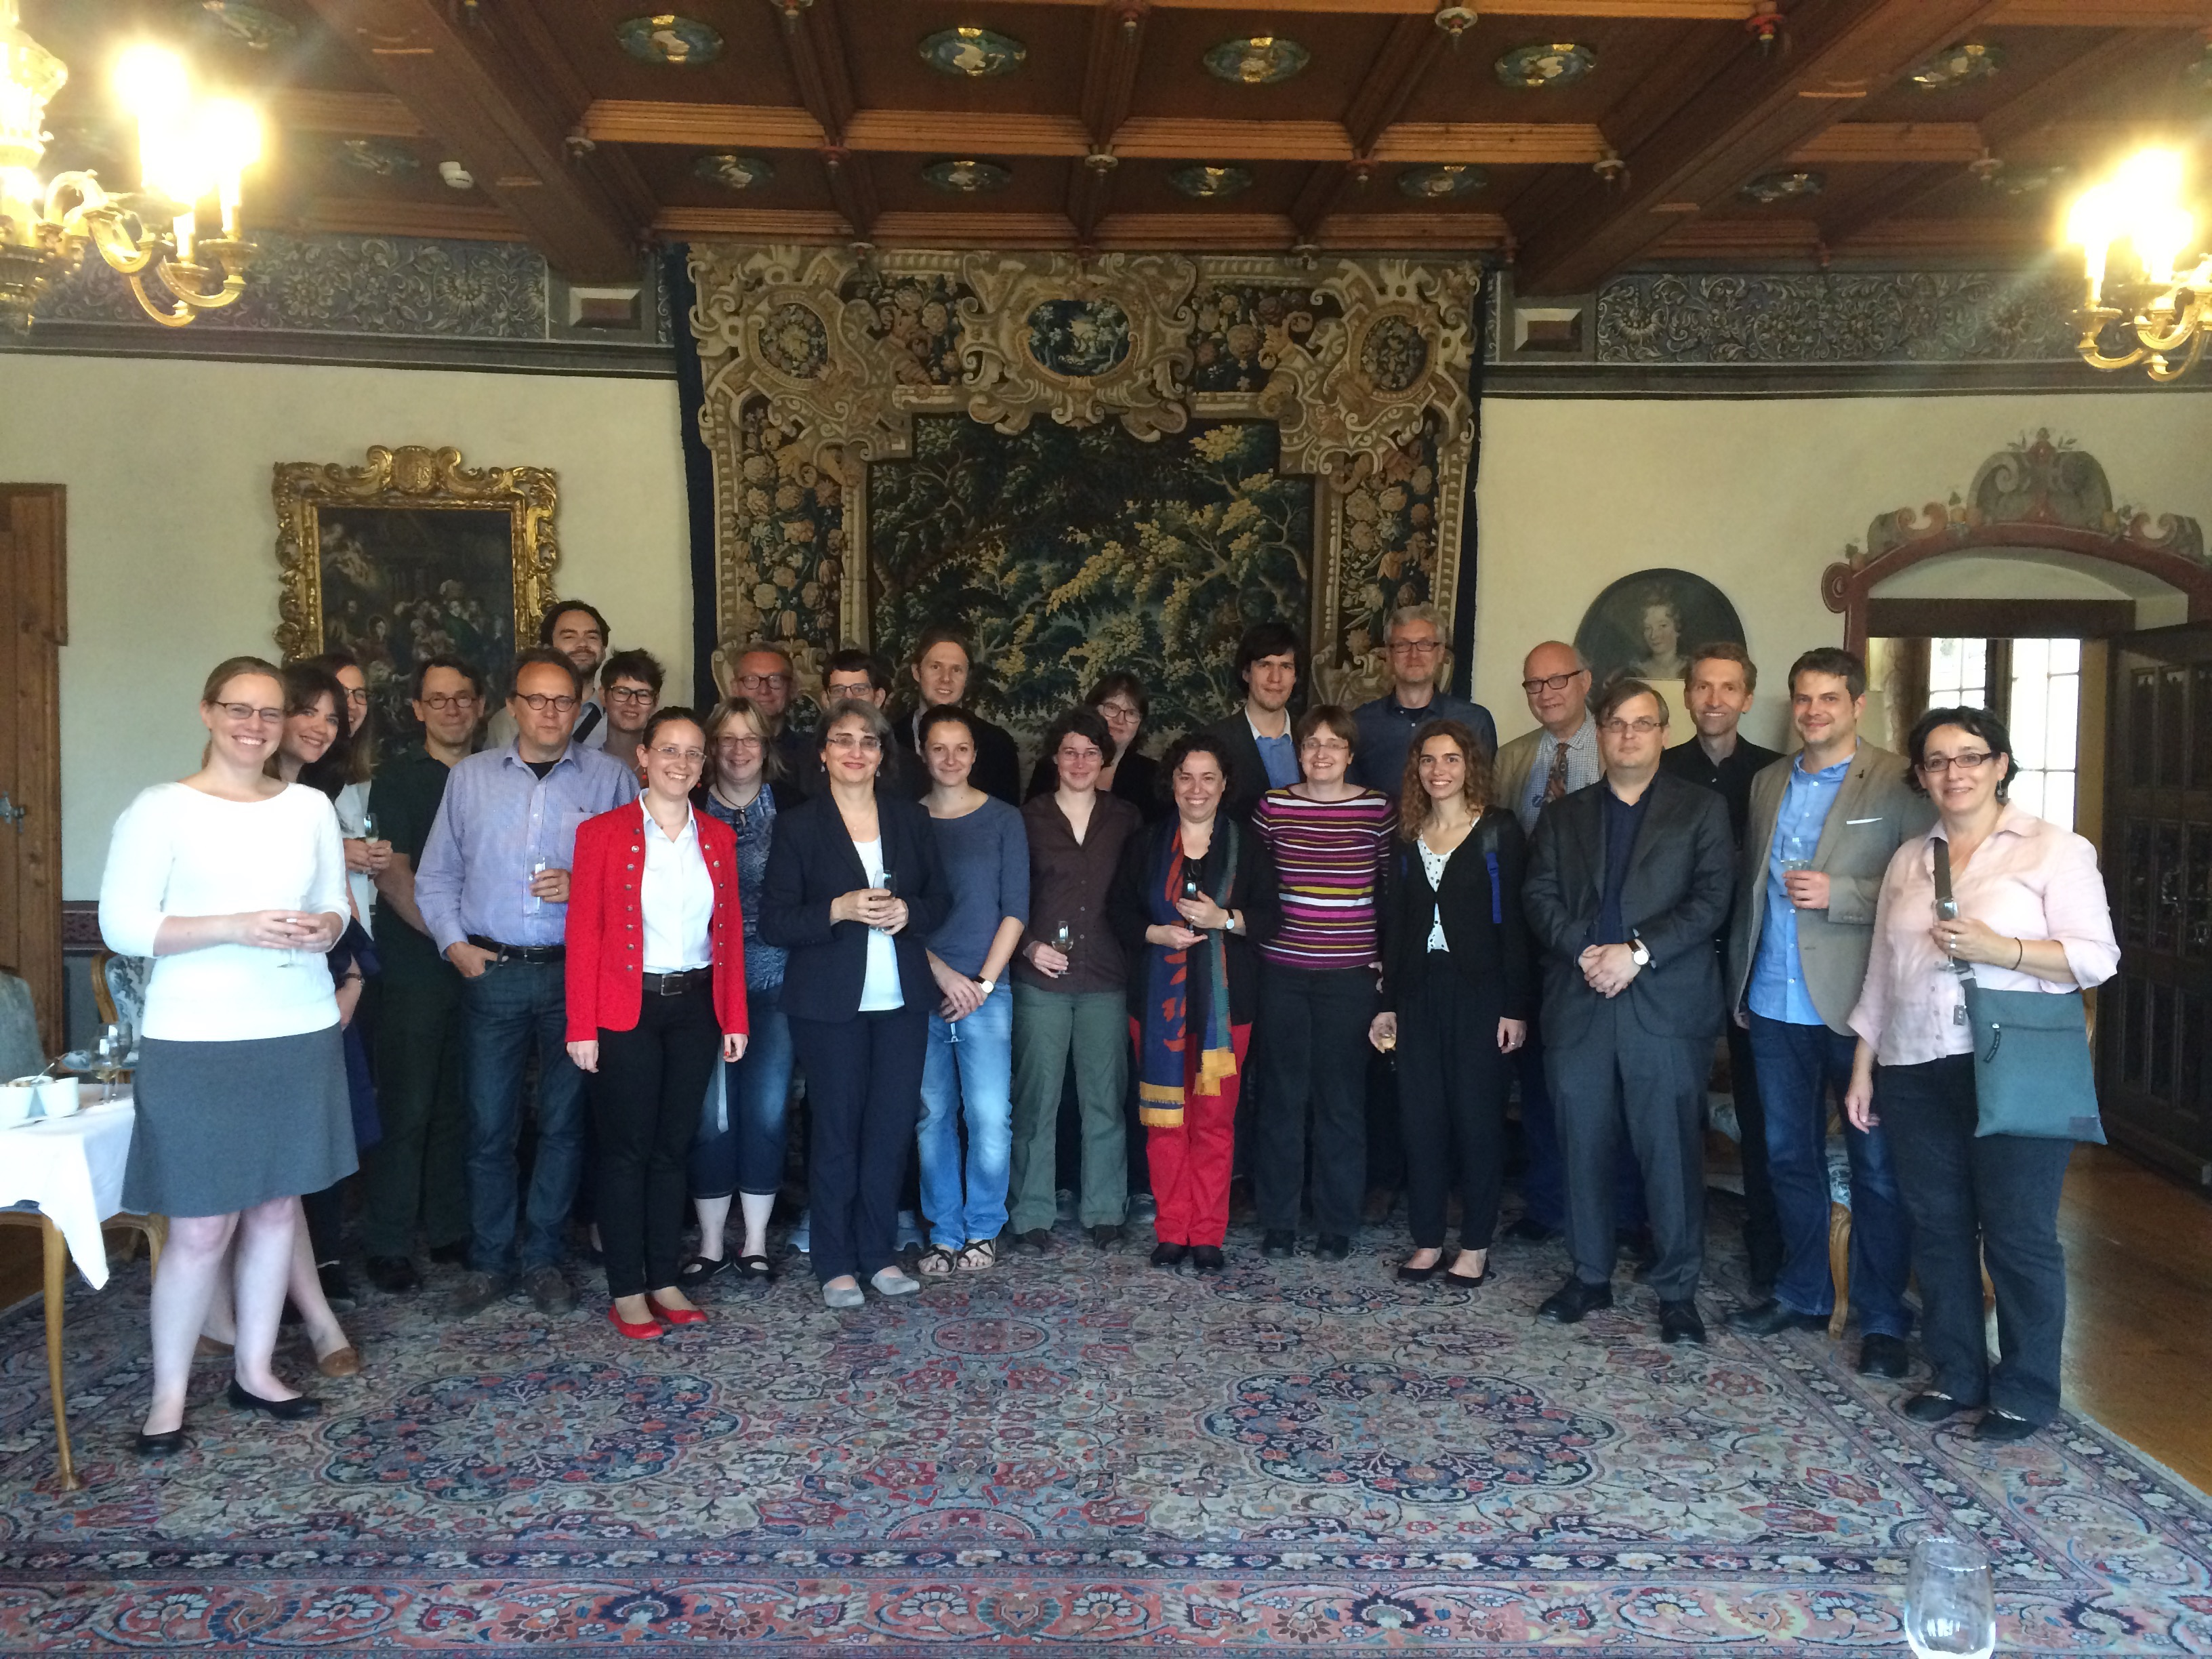 Group photograph of the conference participants at dinner